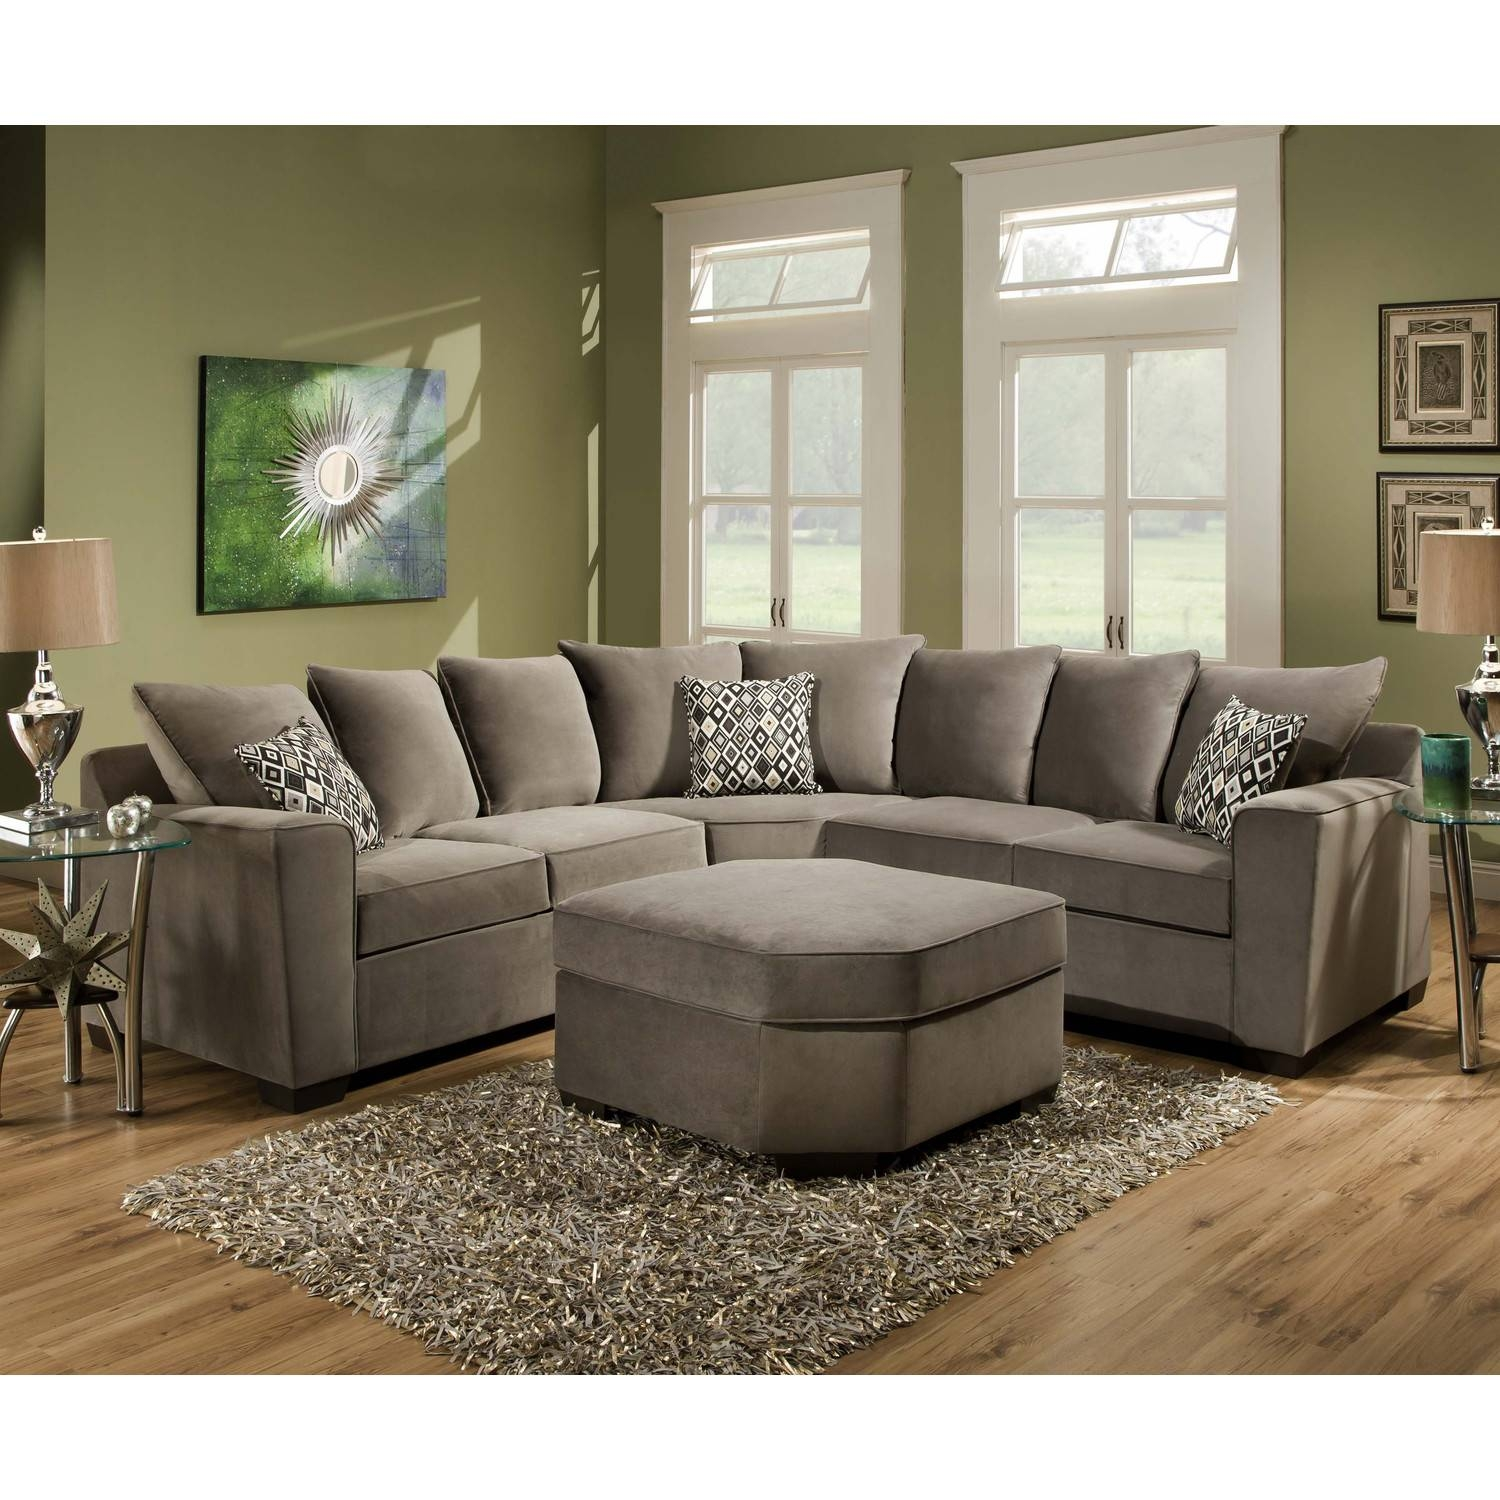 Popular Plush Sectional Sofas 26 With Additional Champion throughout Champion Sectional Sofa (Image 19 of 30)